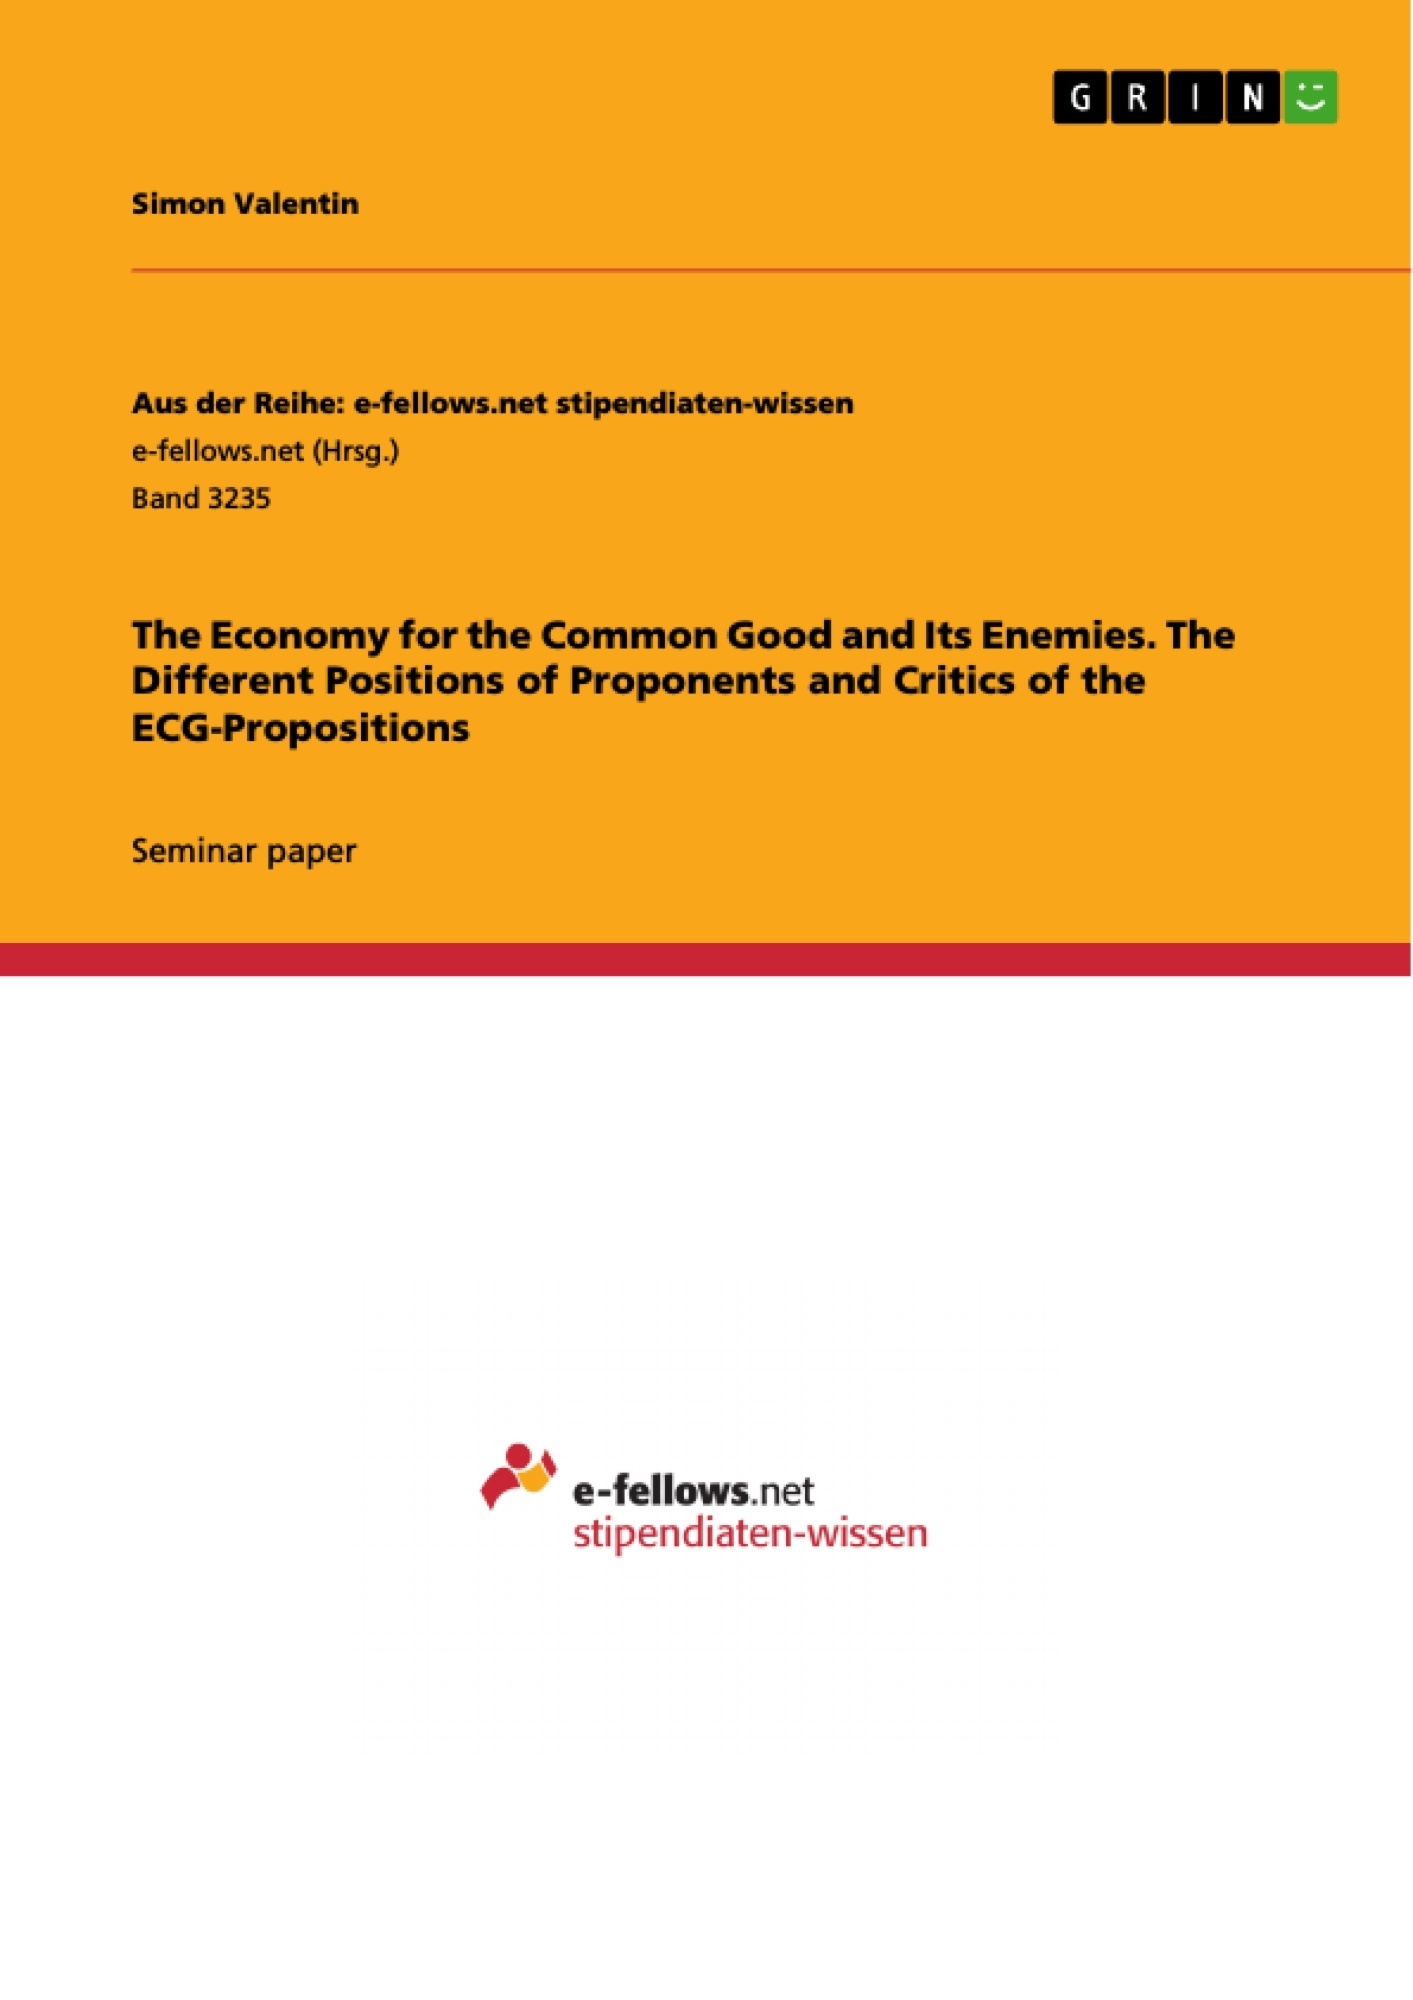 Title: The Economy for the Common Good and Its Enemies. The Different Positions of Proponents and Critics of the ECG-Propositions